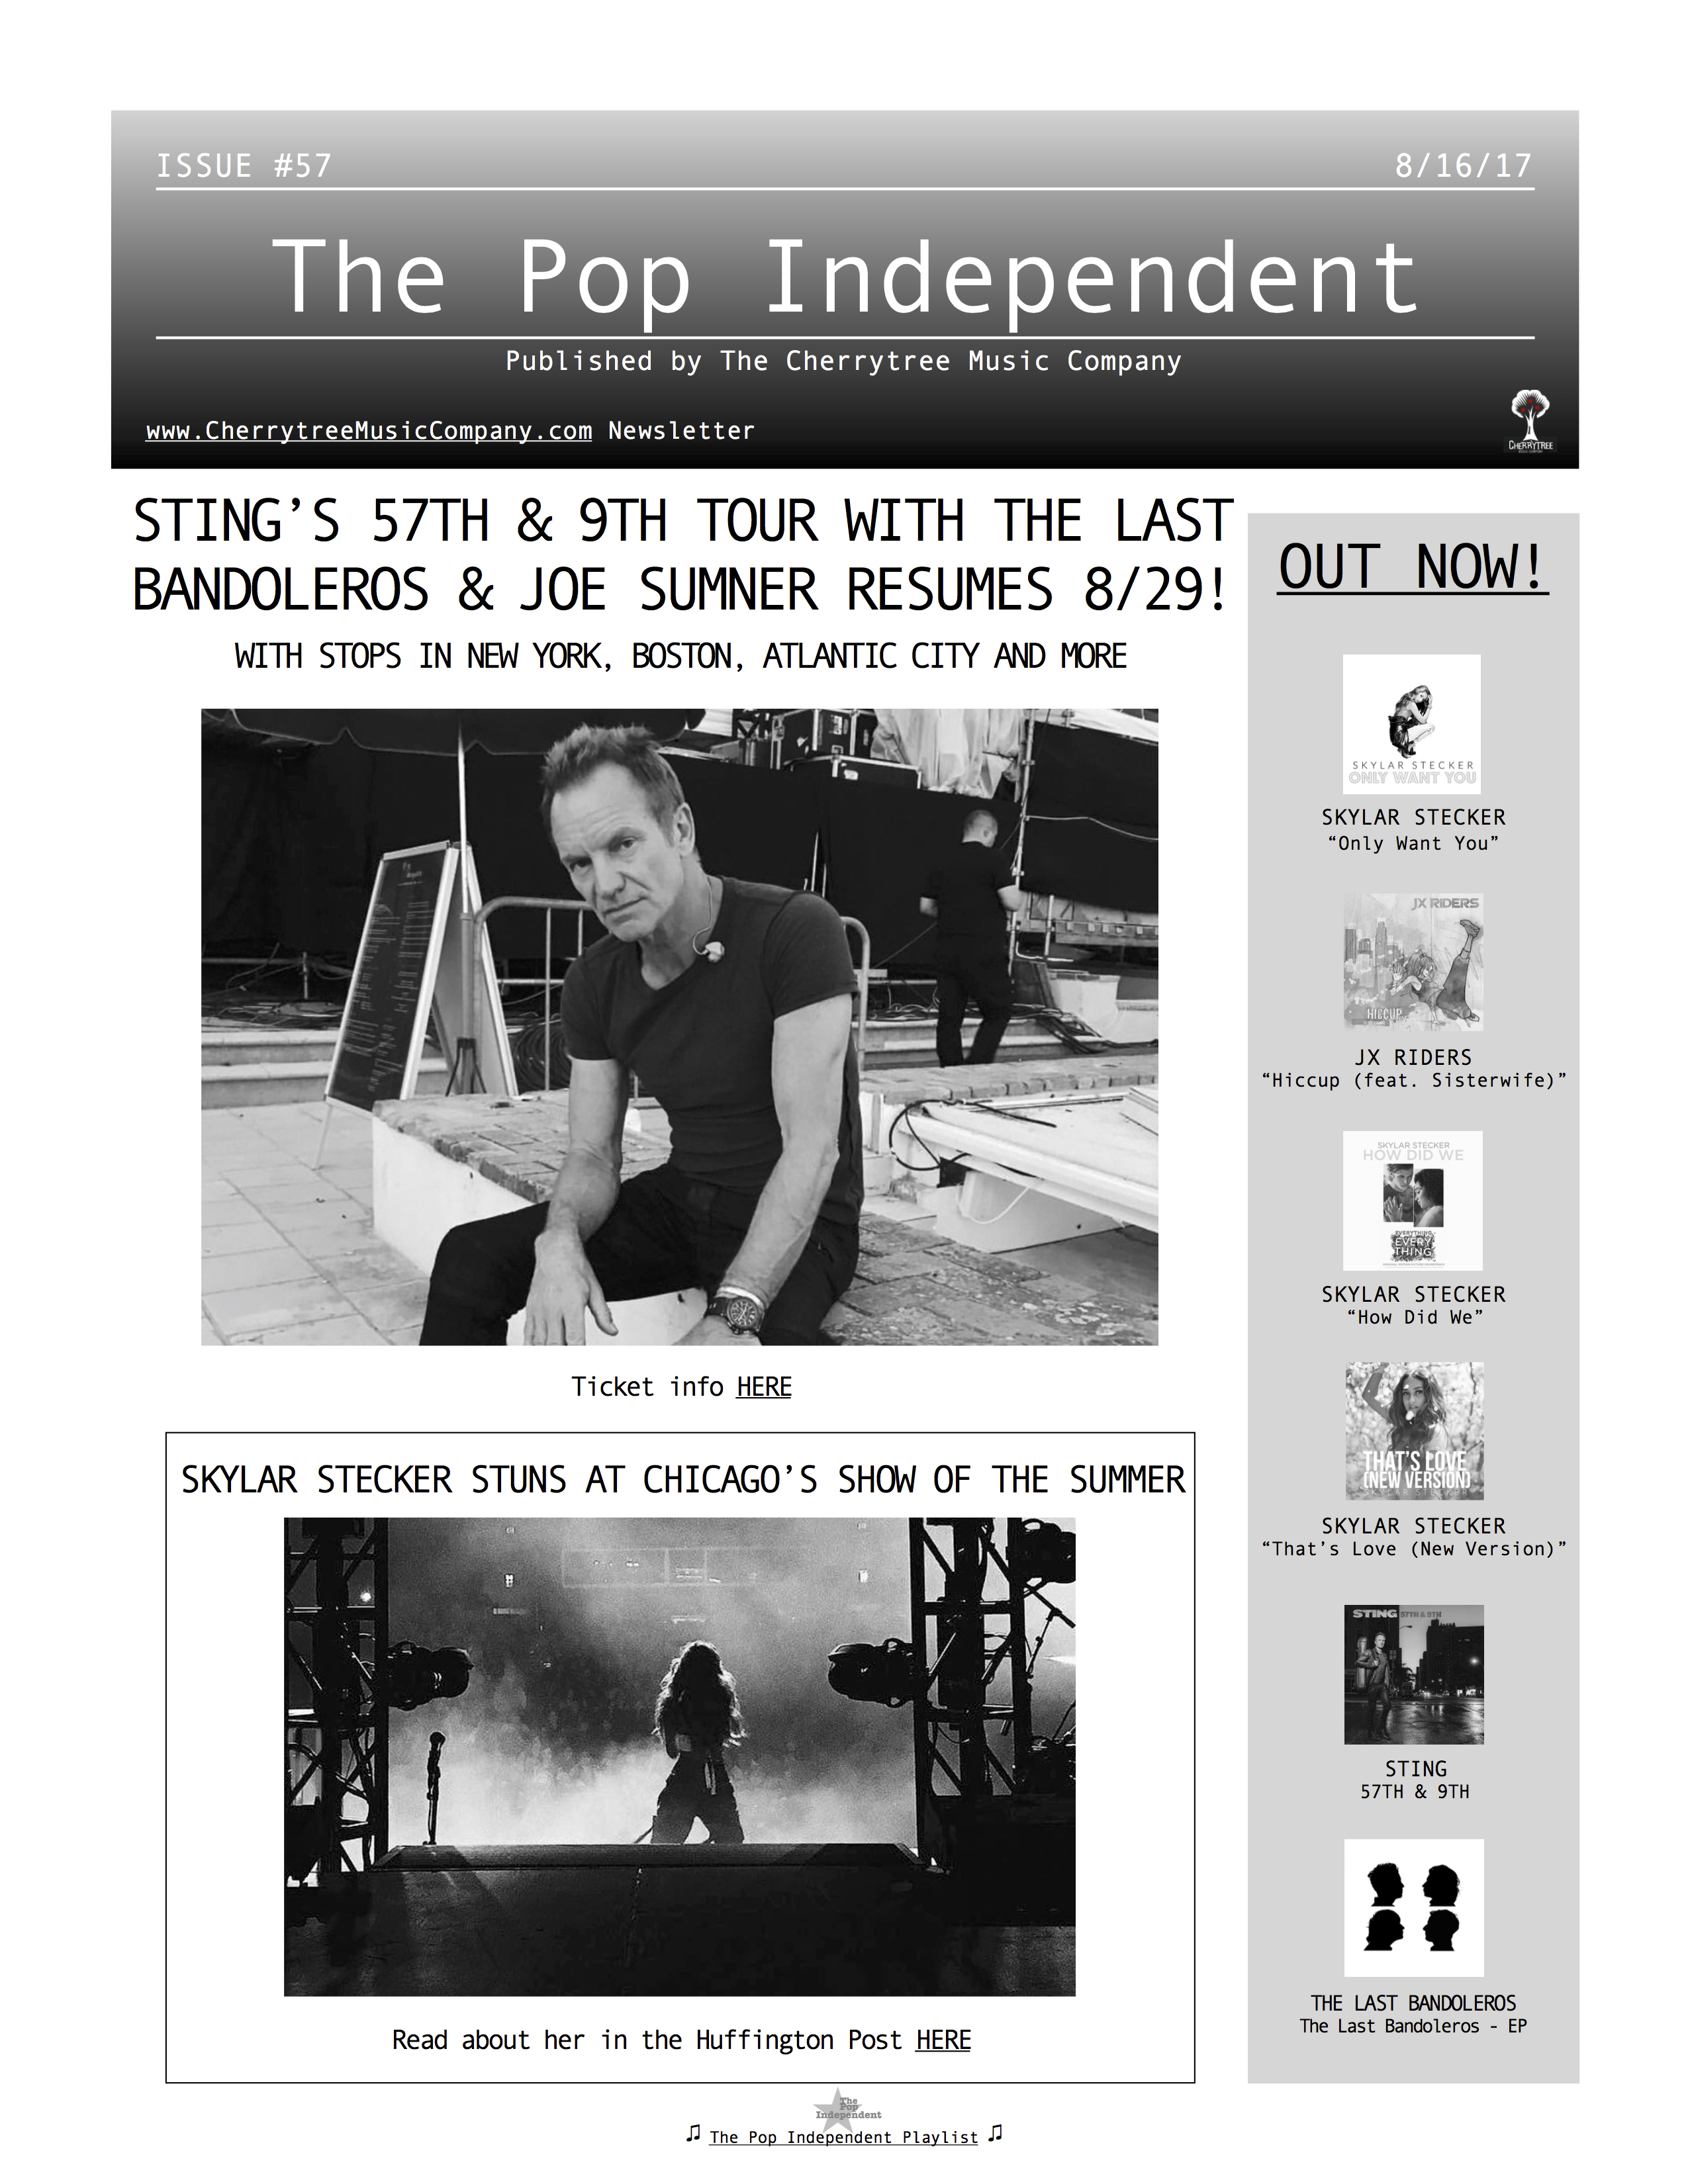 The Pop Independent, issue 57